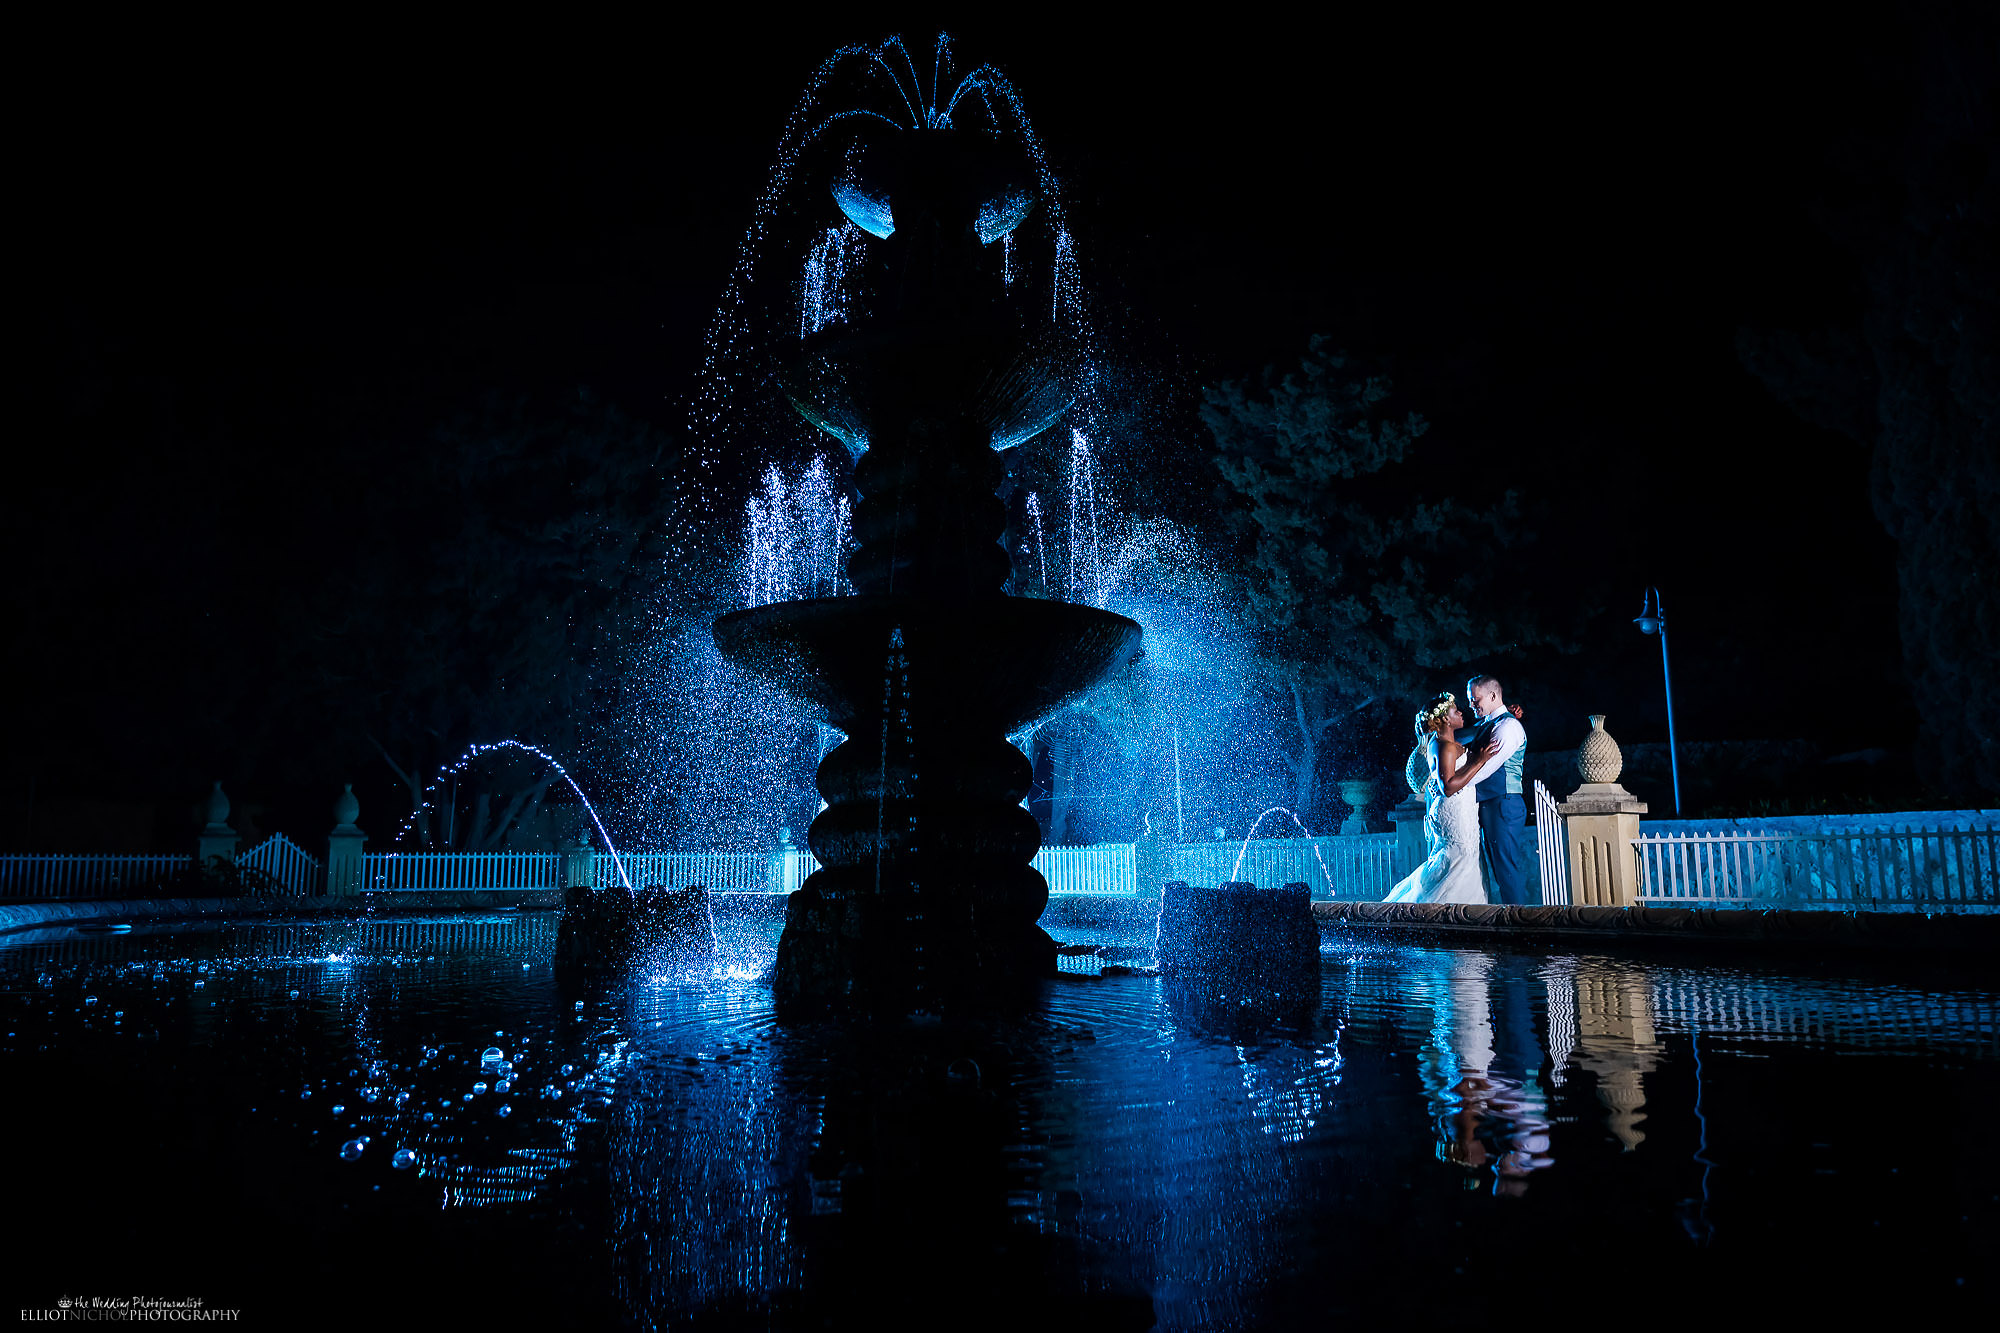 Bride and groom's evening wedding day portrait next to their wedding venue's water fountain. Photo by Elliot Nichol Photography.